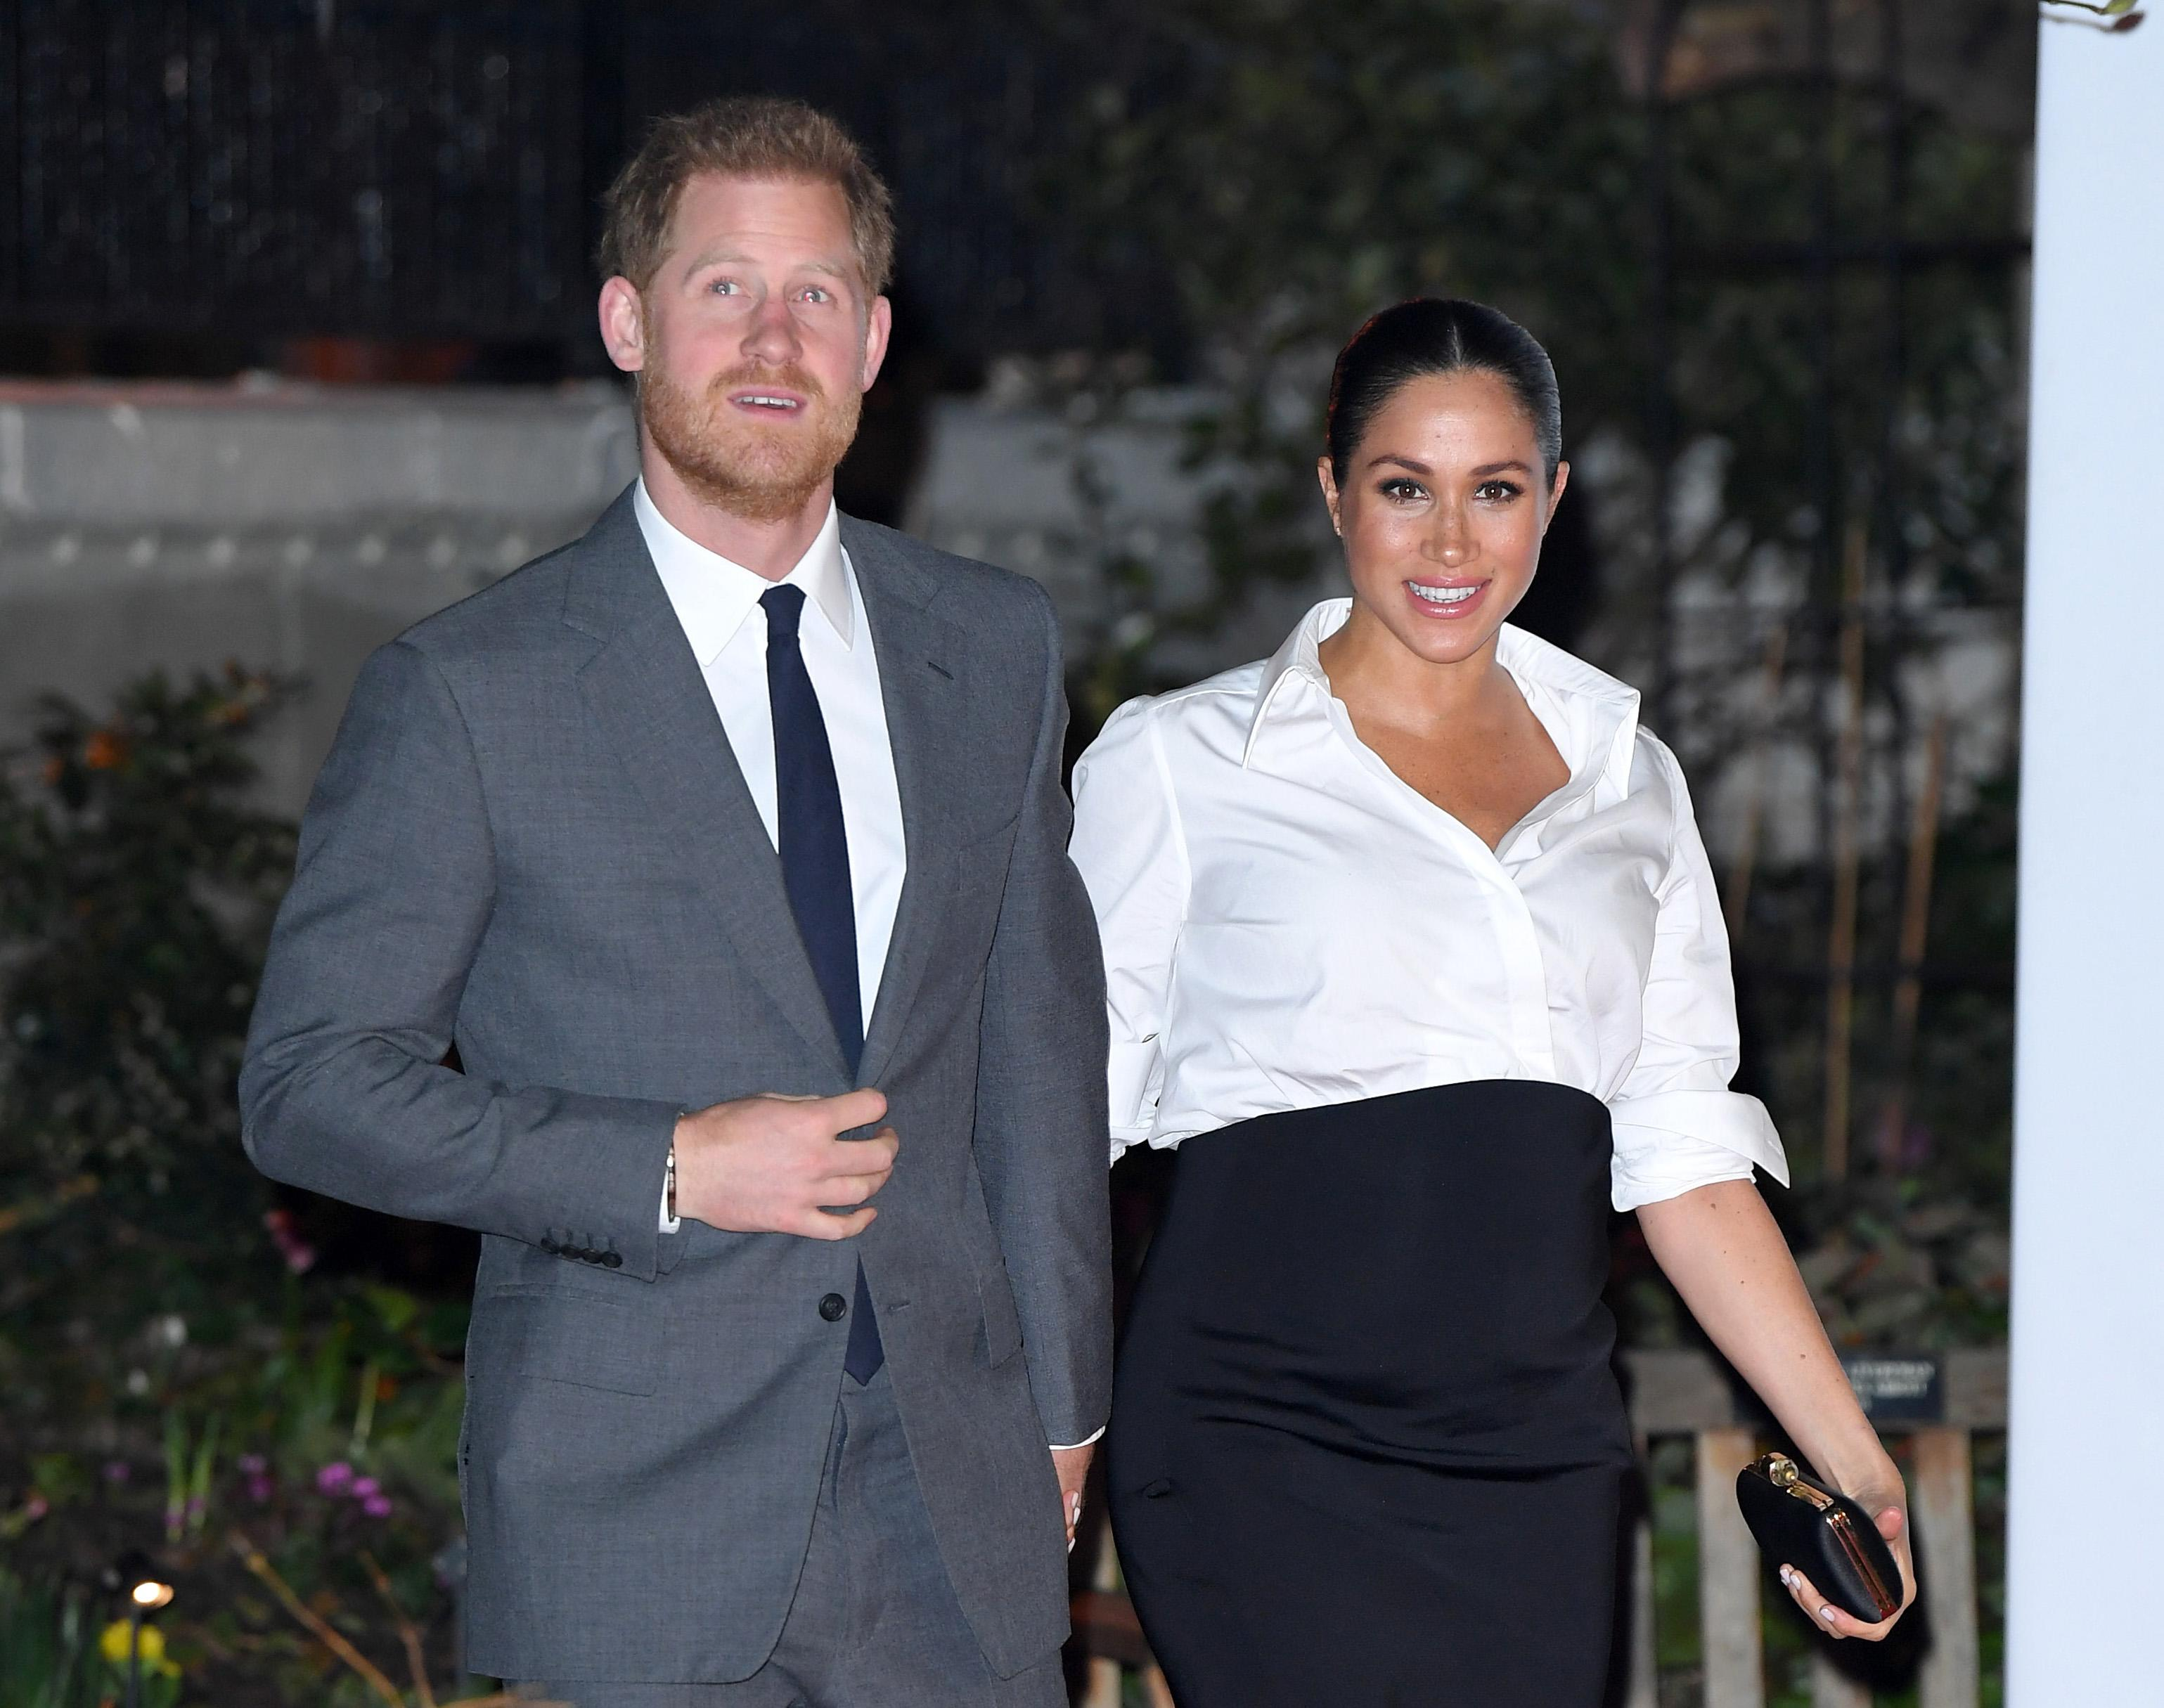 LONDON, ENGLAND - FEBRUARY 07: Prince Harry, Duke of Sussex and Meghan, Duchess of Sussex attend the Endeavour Fund awards at Drapers Hall on February 07, 2019 in London, England. (Photo by Karwai Tang/WireImage)